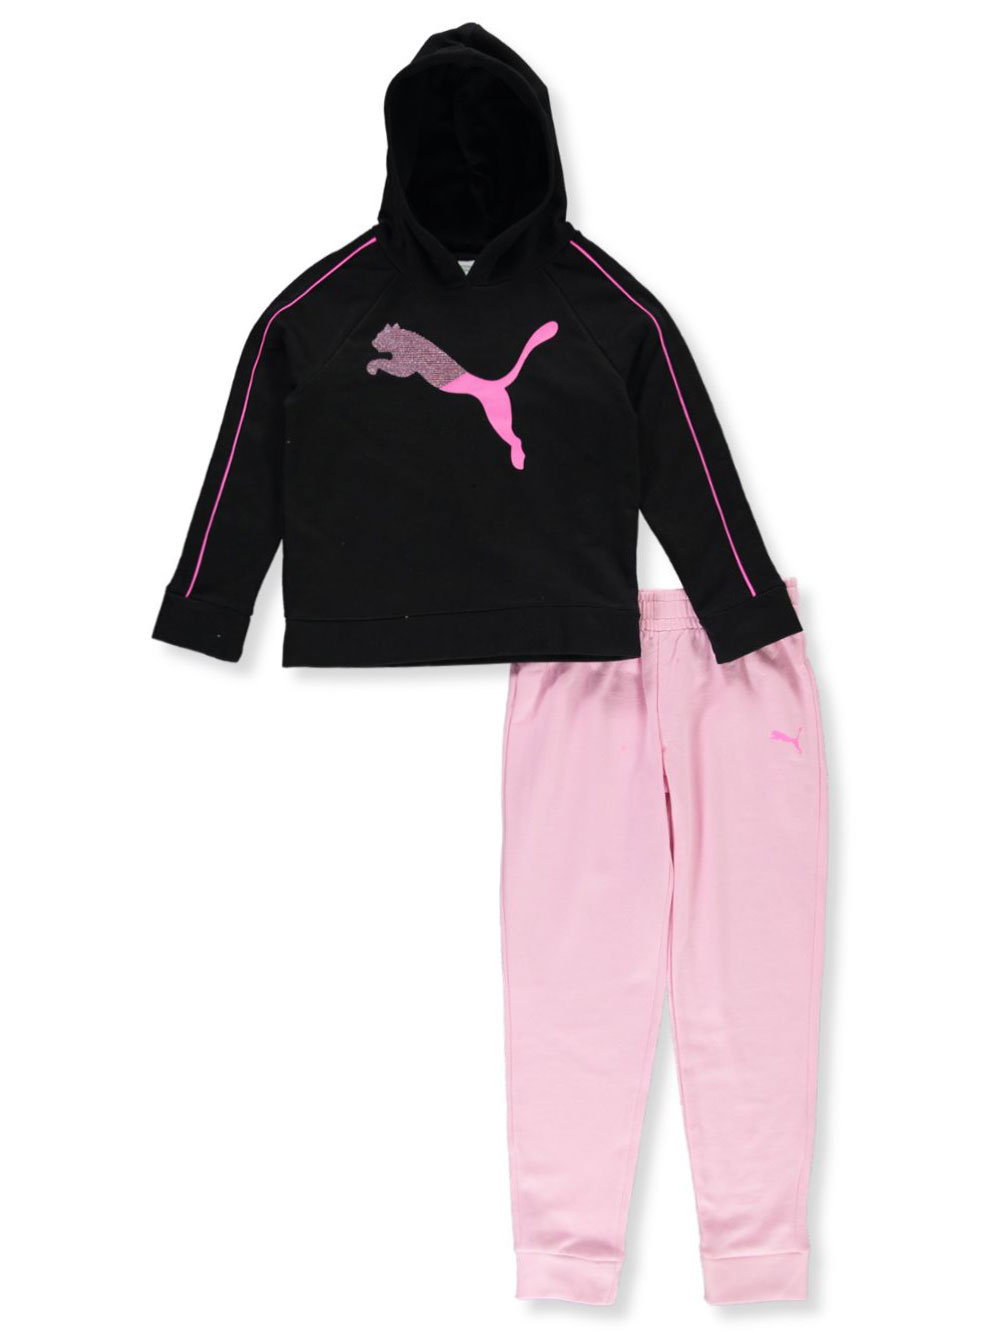 Girls Black and Pink Sets